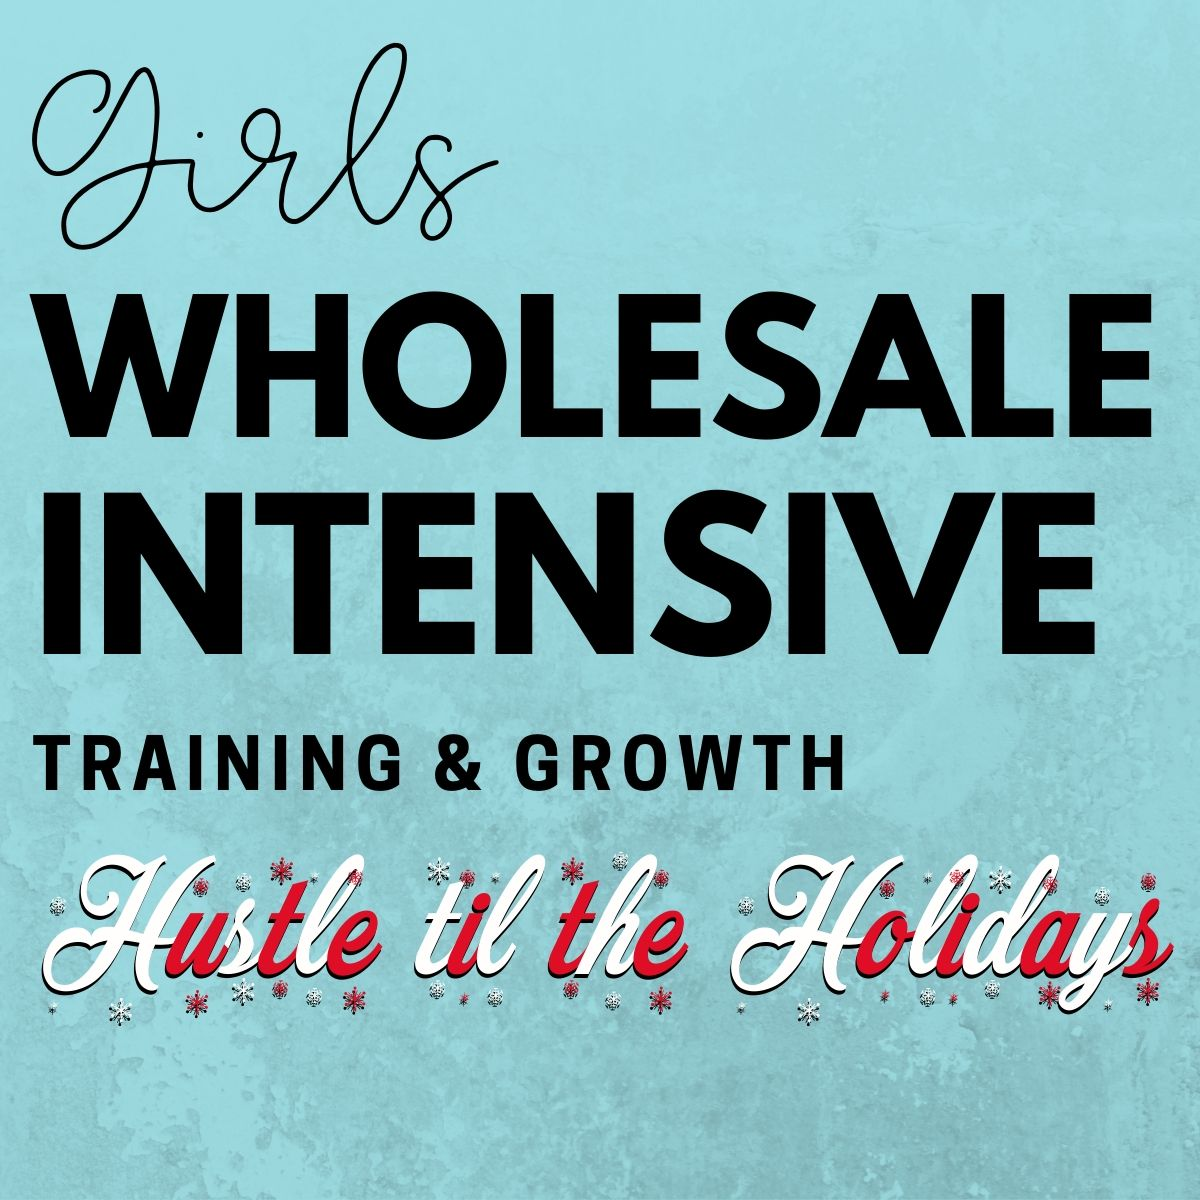 Wholesale Training & Growth Intensive ~ Hustle Til The Holidays